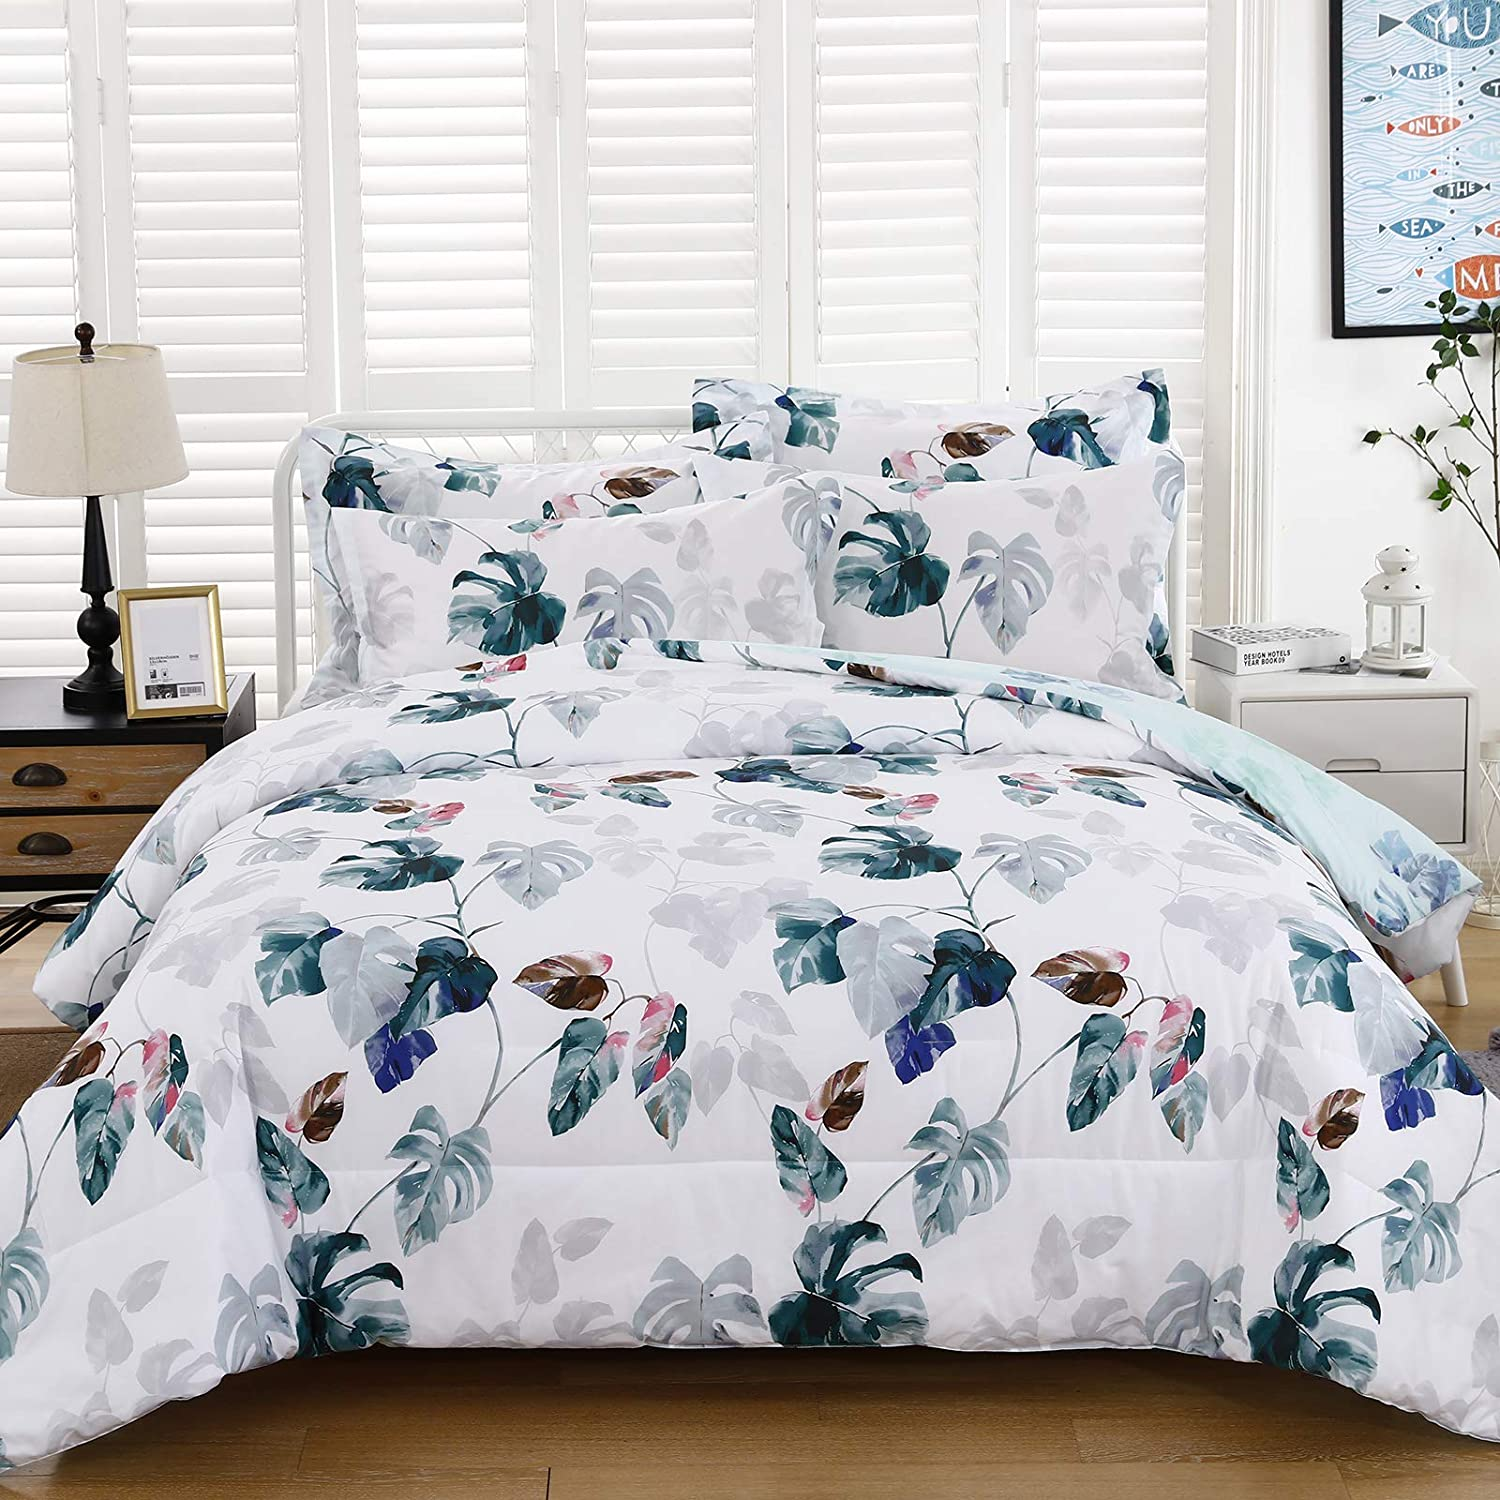 Floral Cotton Comforter Queen, 100% Cotton Reversible Green Botanical Plant Leaves Printed White Solid Comforter with 2 Pillowcases for All Season, 3 Piece Bedding Inner Filling Duvet Set Queen Size